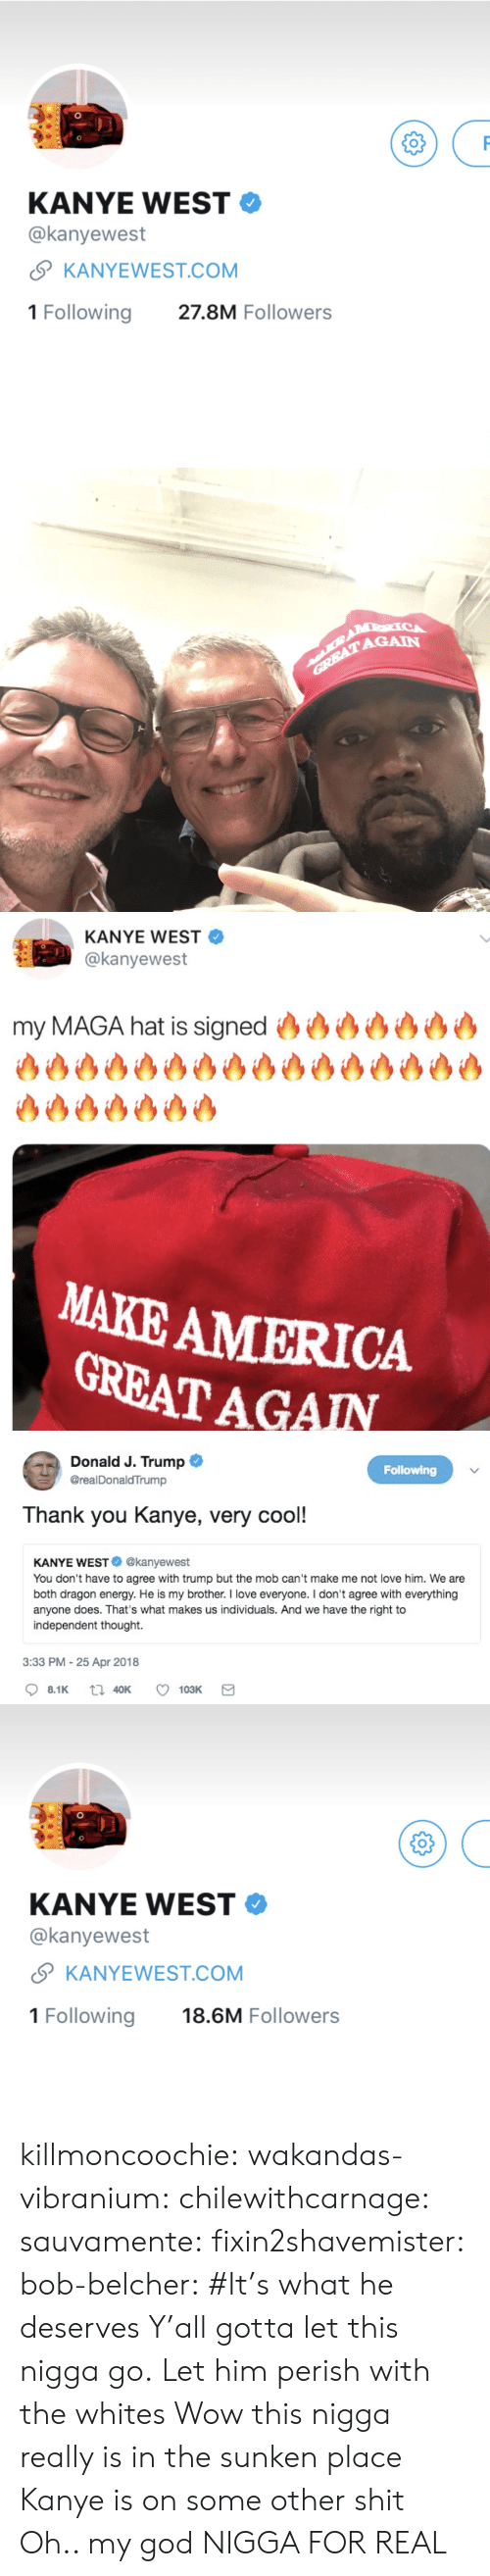 America, Energy, and God: KANYE WEST  @kanyewest  SKANYEWEST.COM  1 Following 27.8M Followers   AGAIN   KANYE WEST  @kanyewest  my MAGA hat is signed (93沙沙沙沙沙  沙沙沙沙沙沙沙  MAKE AMERICA  GREAT AGAN   Donald J. Trump  @realDonaldTrump  Following  Thank you Kanye, very cool!  KANYE WEST@kanyewest  You don't have to agree with trump but the mob can't make me not love him. We are  both dragon energy. He is my brother. I love everyone. I don't agree with everything  anyone does. That's what makes us individuals. And we have the right to  independent thought.  3:33 PM - 25 Apr 2018   KANYE WEST  @kanyewest  S KANYEWEST.COM  1 Following 18.6M Followers killmoncoochie:  wakandas-vibranium:  chilewithcarnage:  sauvamente: fixin2shavemister:   bob-belcher: #It's what he deserves  Y'all gotta let this nigga go.   Let him perish with the whites Wow this nigga really is in the sunken place  Kanye is on some other shit   Oh.. my god NIGGA FOR REAL